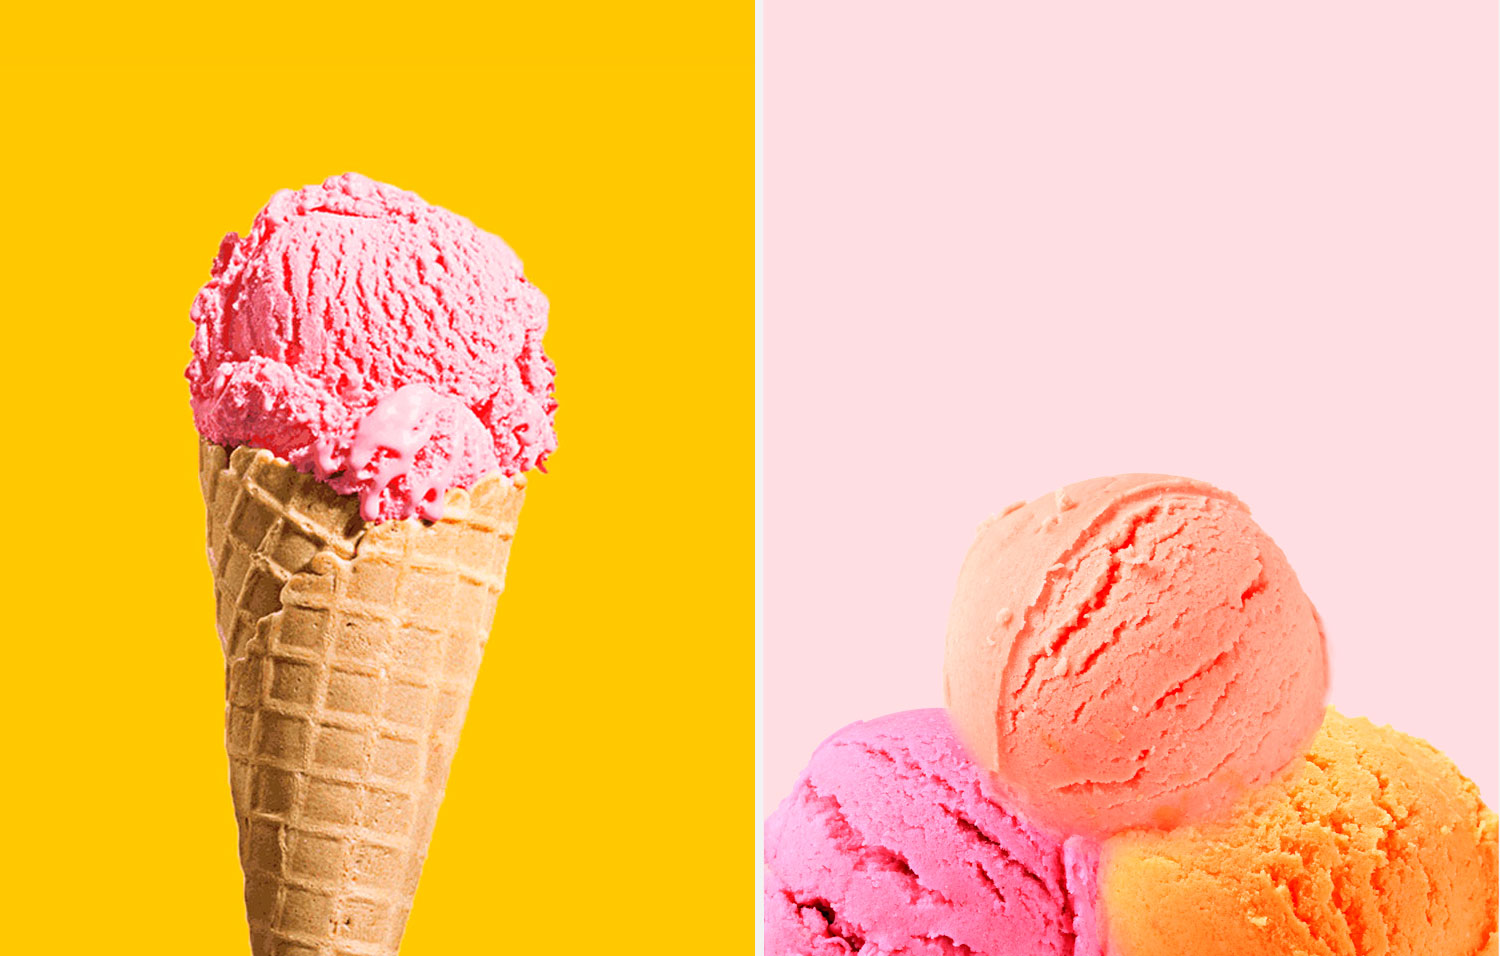 <strong>Which is better for you: Half cup of ice cream or 3 scoops of sorbet?</strong>